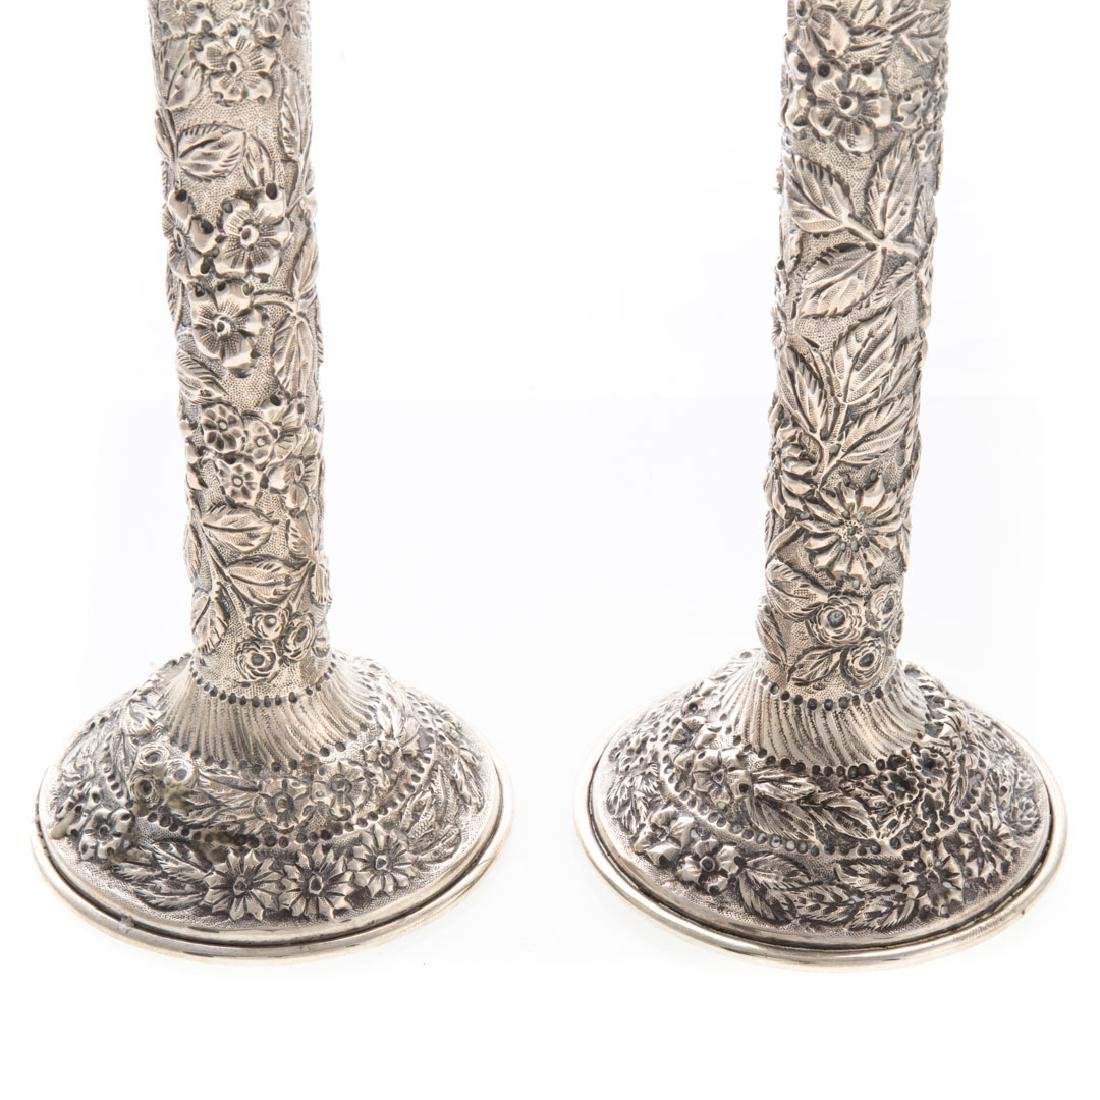 Pair Baltimore Silversmiths sterling candlesticks - 2